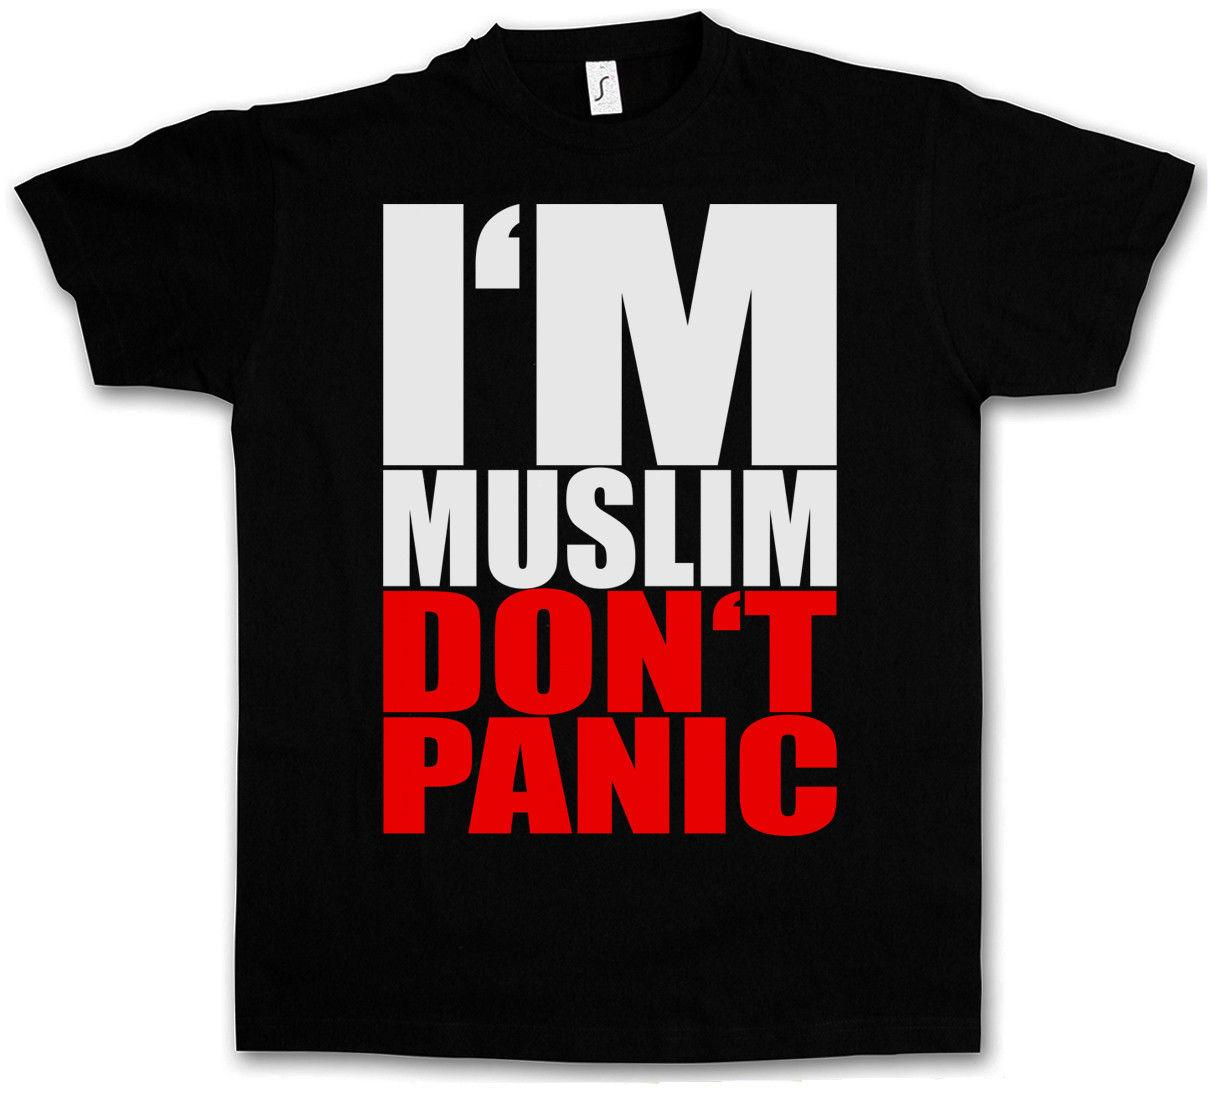 T-SHIRT I AM MUSLIM DO NOT PANIC II - Islam Moslem NEW Gift Print T-shirt Hip Hop Tee T Shirt NEW ARRIVAL tees causal